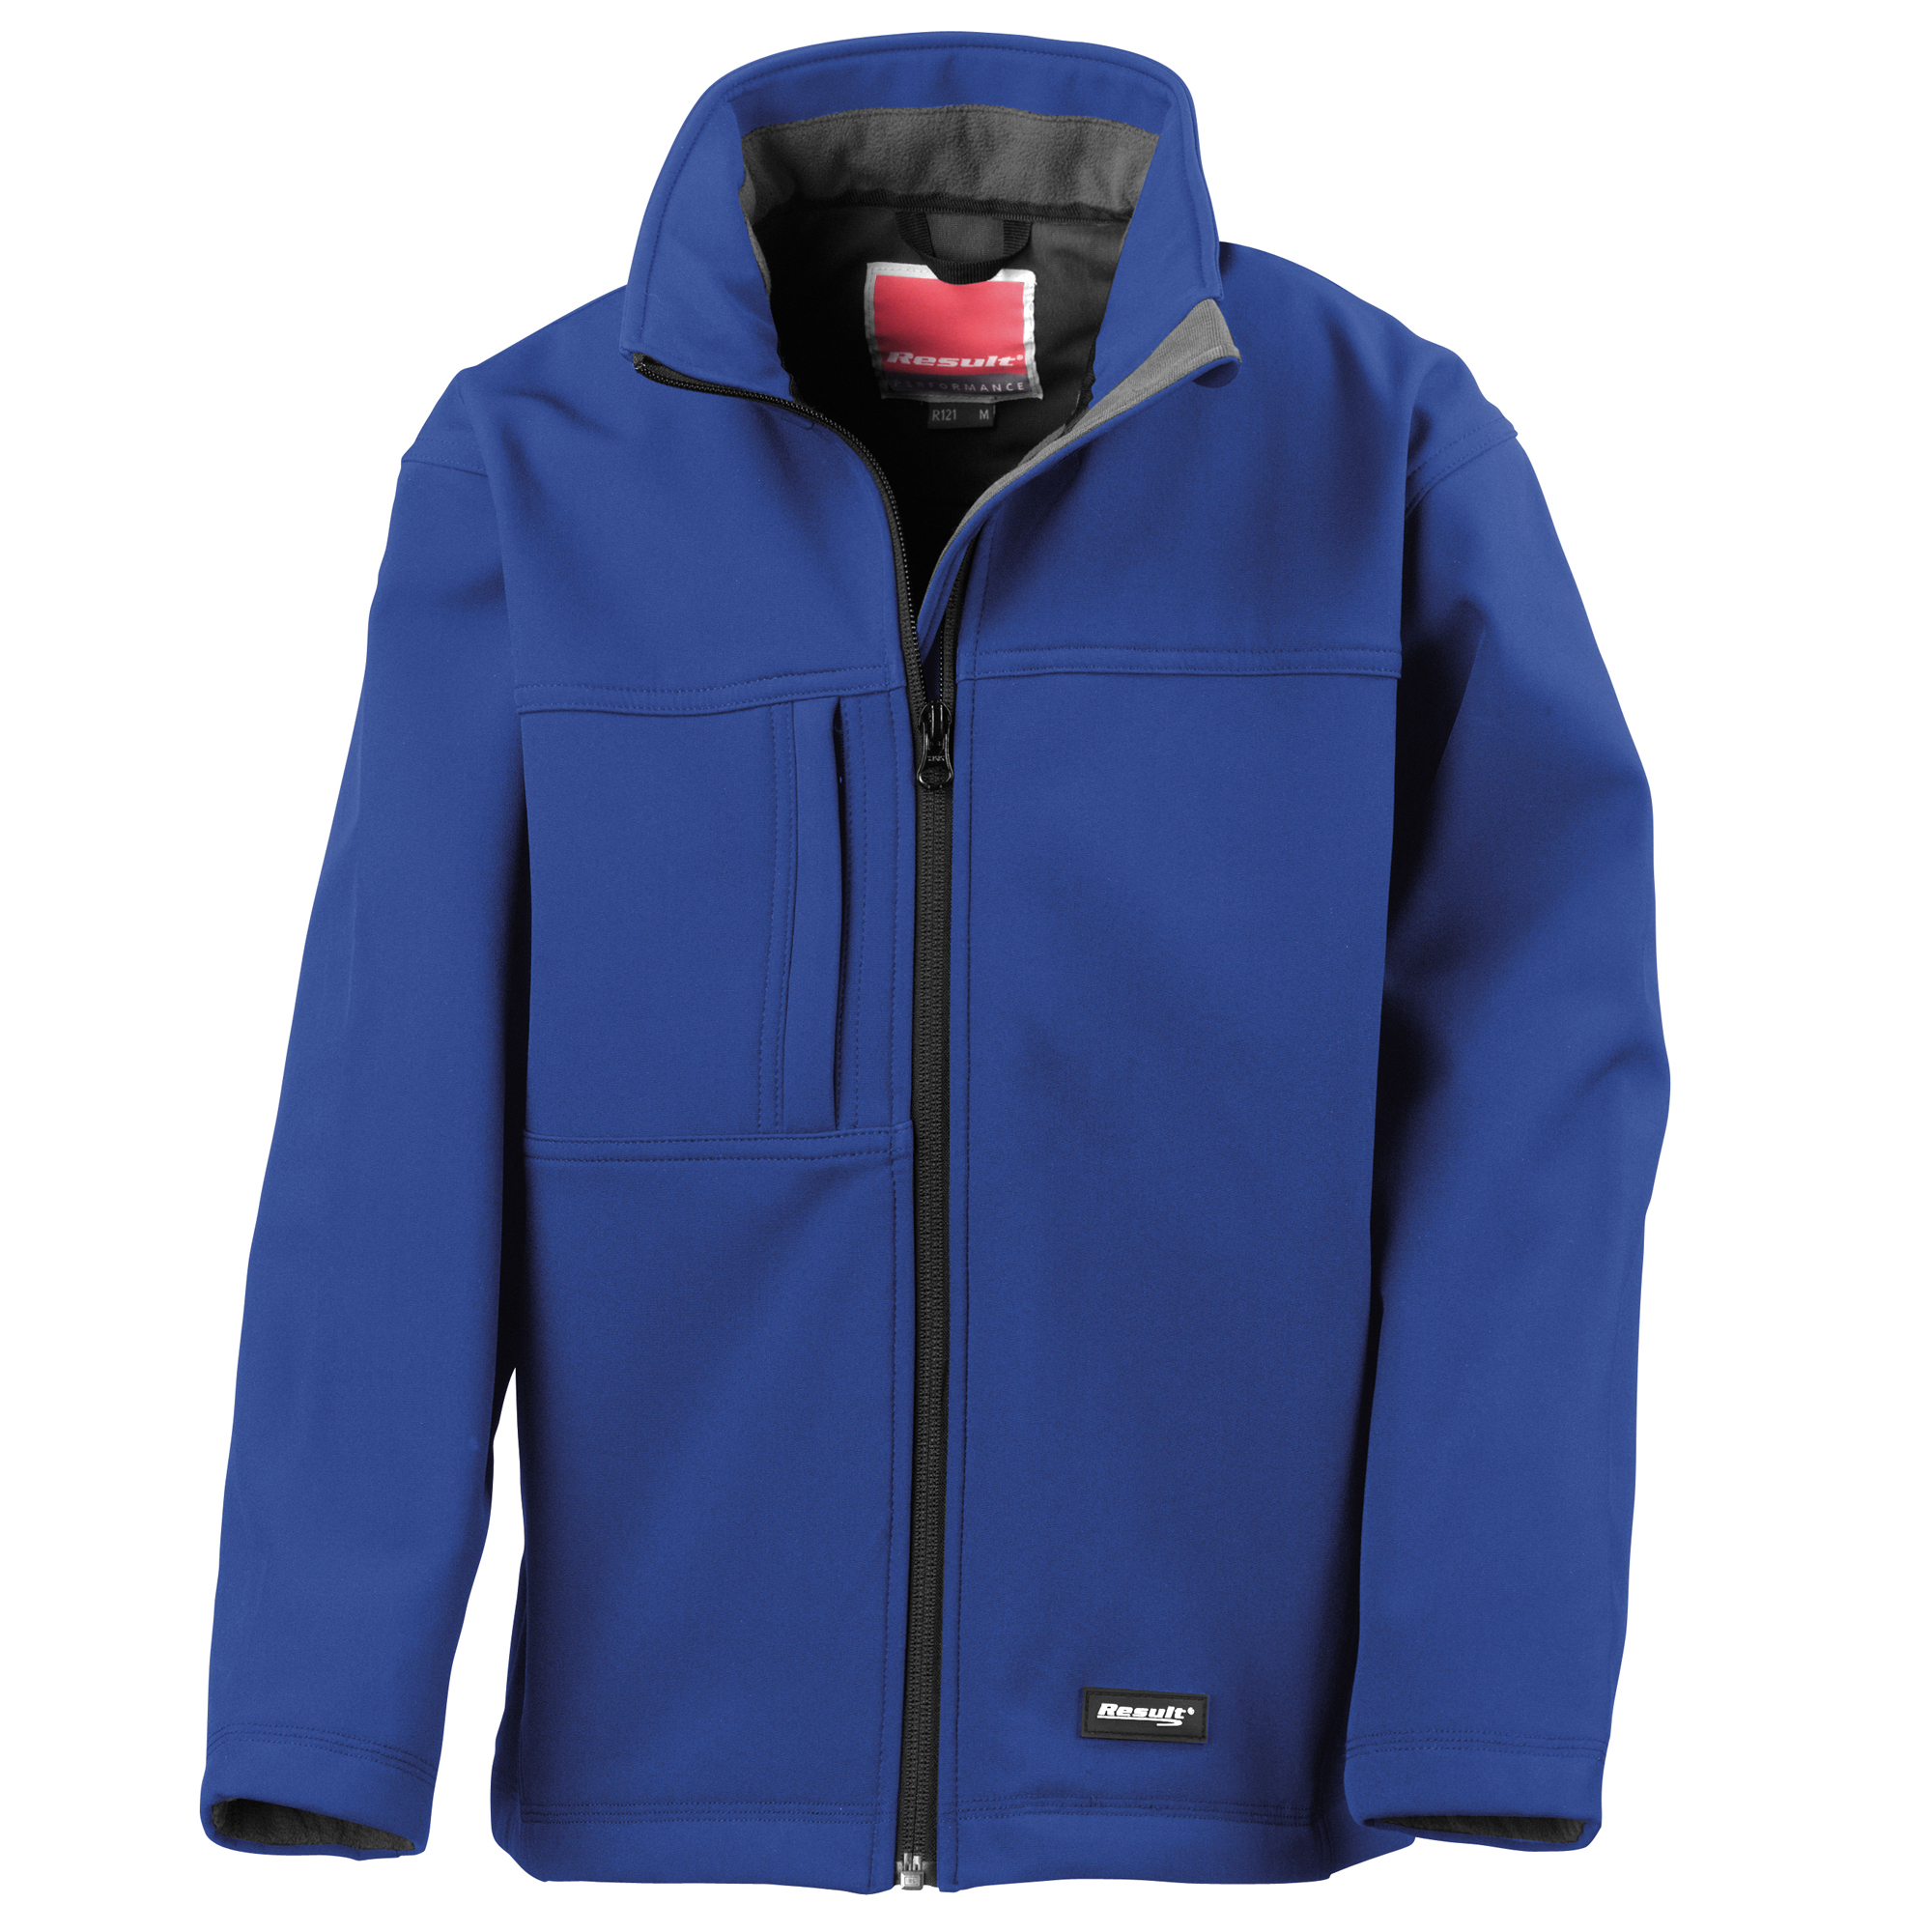 Result-Childrens-Unisex-Waterproof-Classic-Softshell-3-Layer-Jacket-RW3211